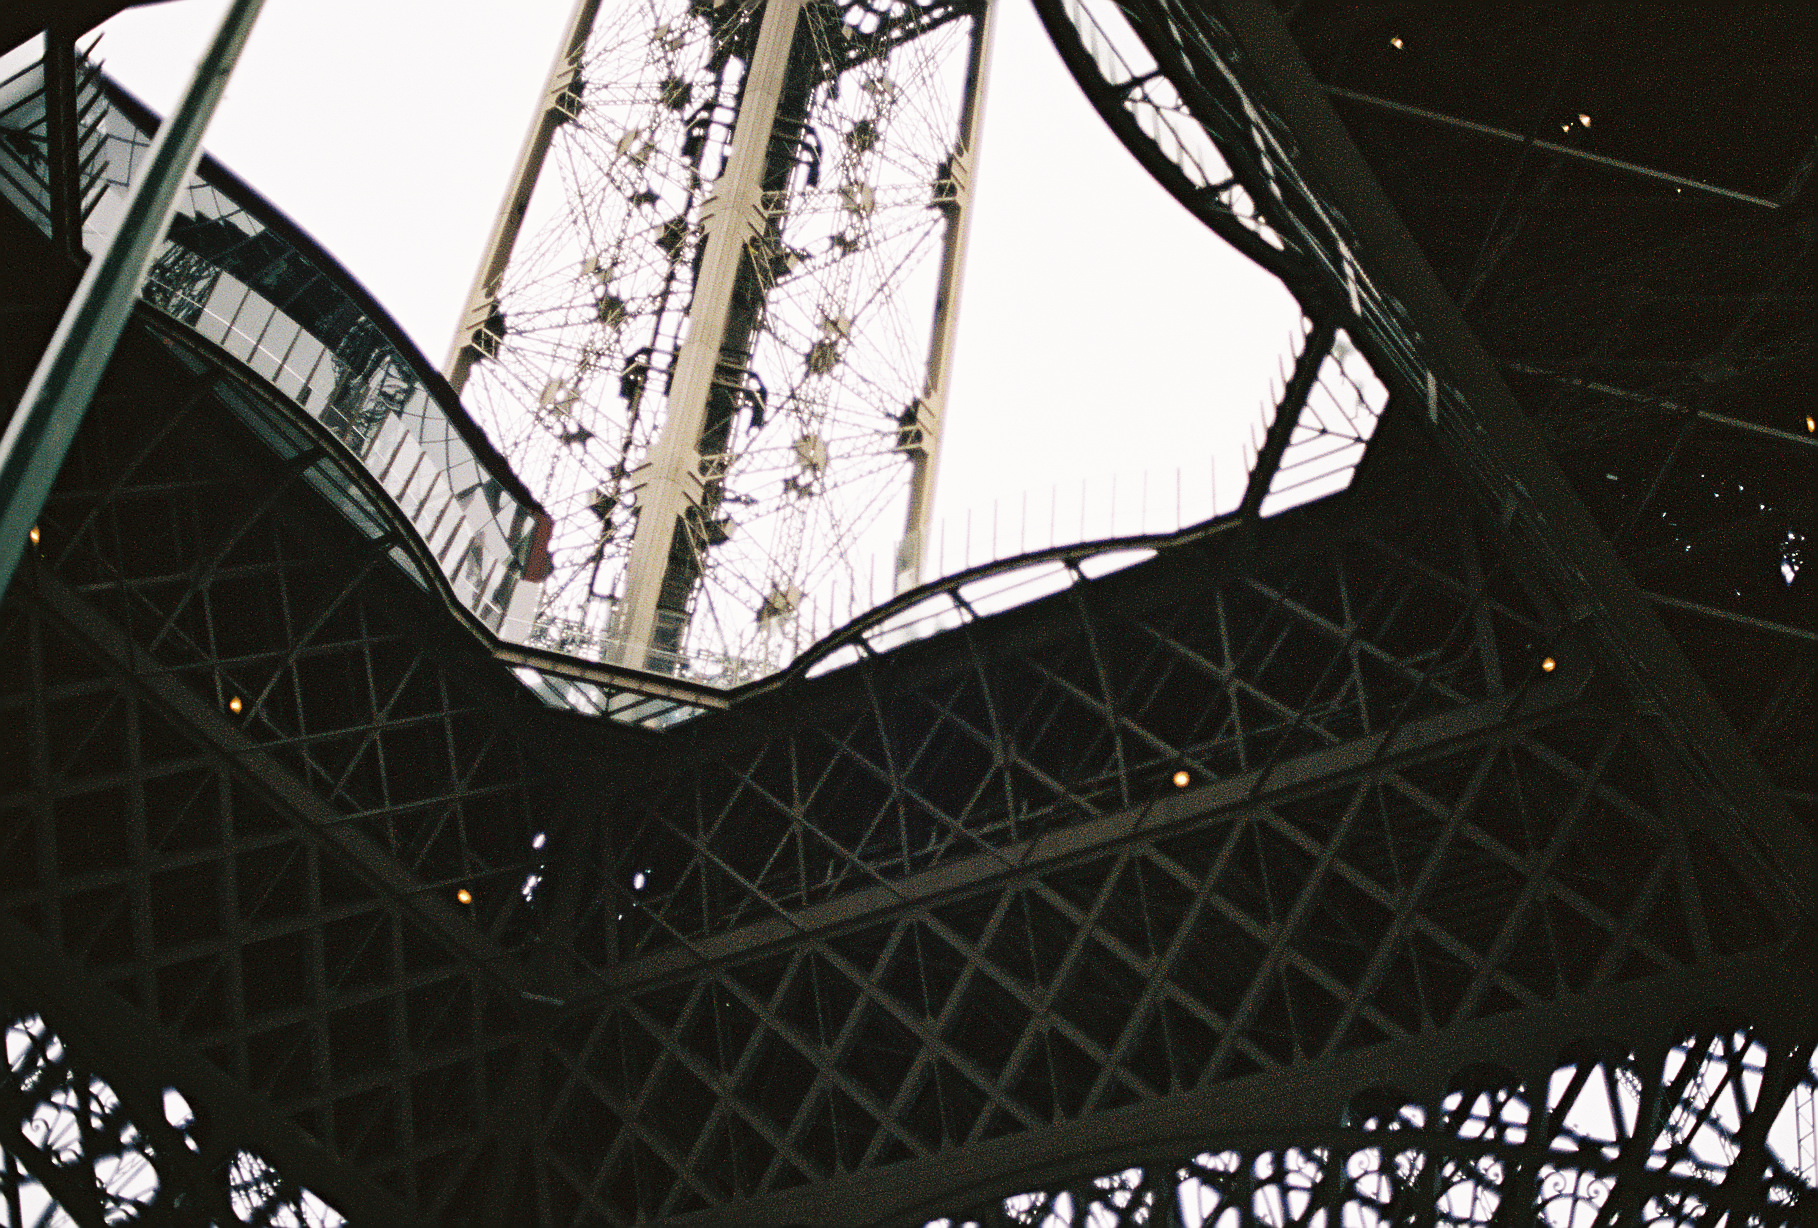 under-eiffel-tower-paris-france-european-honeymoon